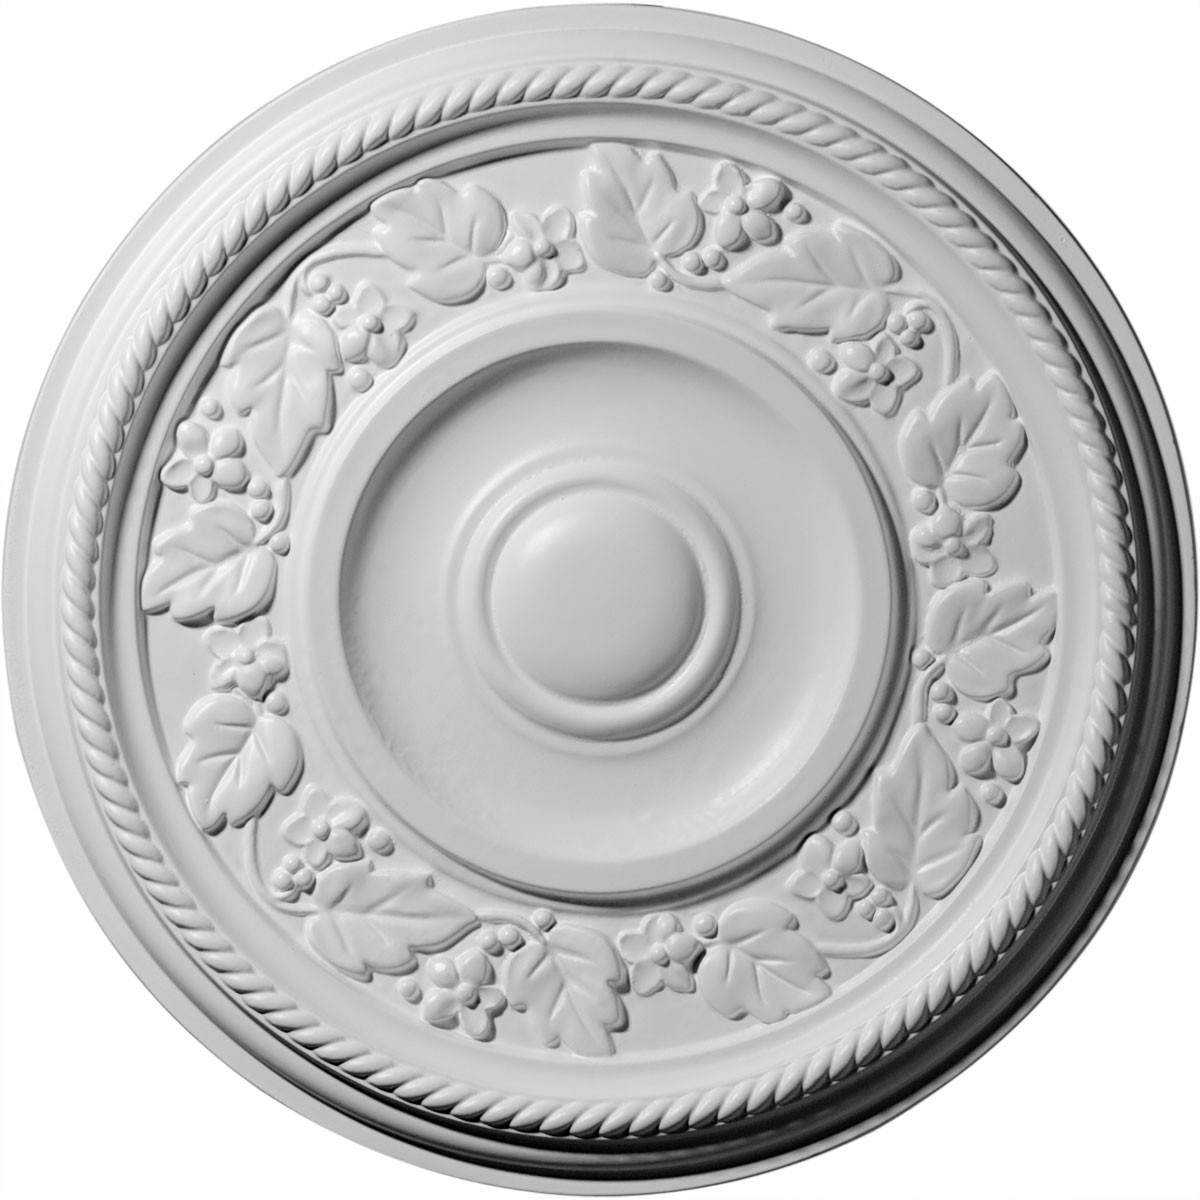 """EM-CM16TY - 16 1/8""""OD x 3/4""""P Tyrone Ceiling Medallion (Fits Canopies up to 6 3/4"""")"""